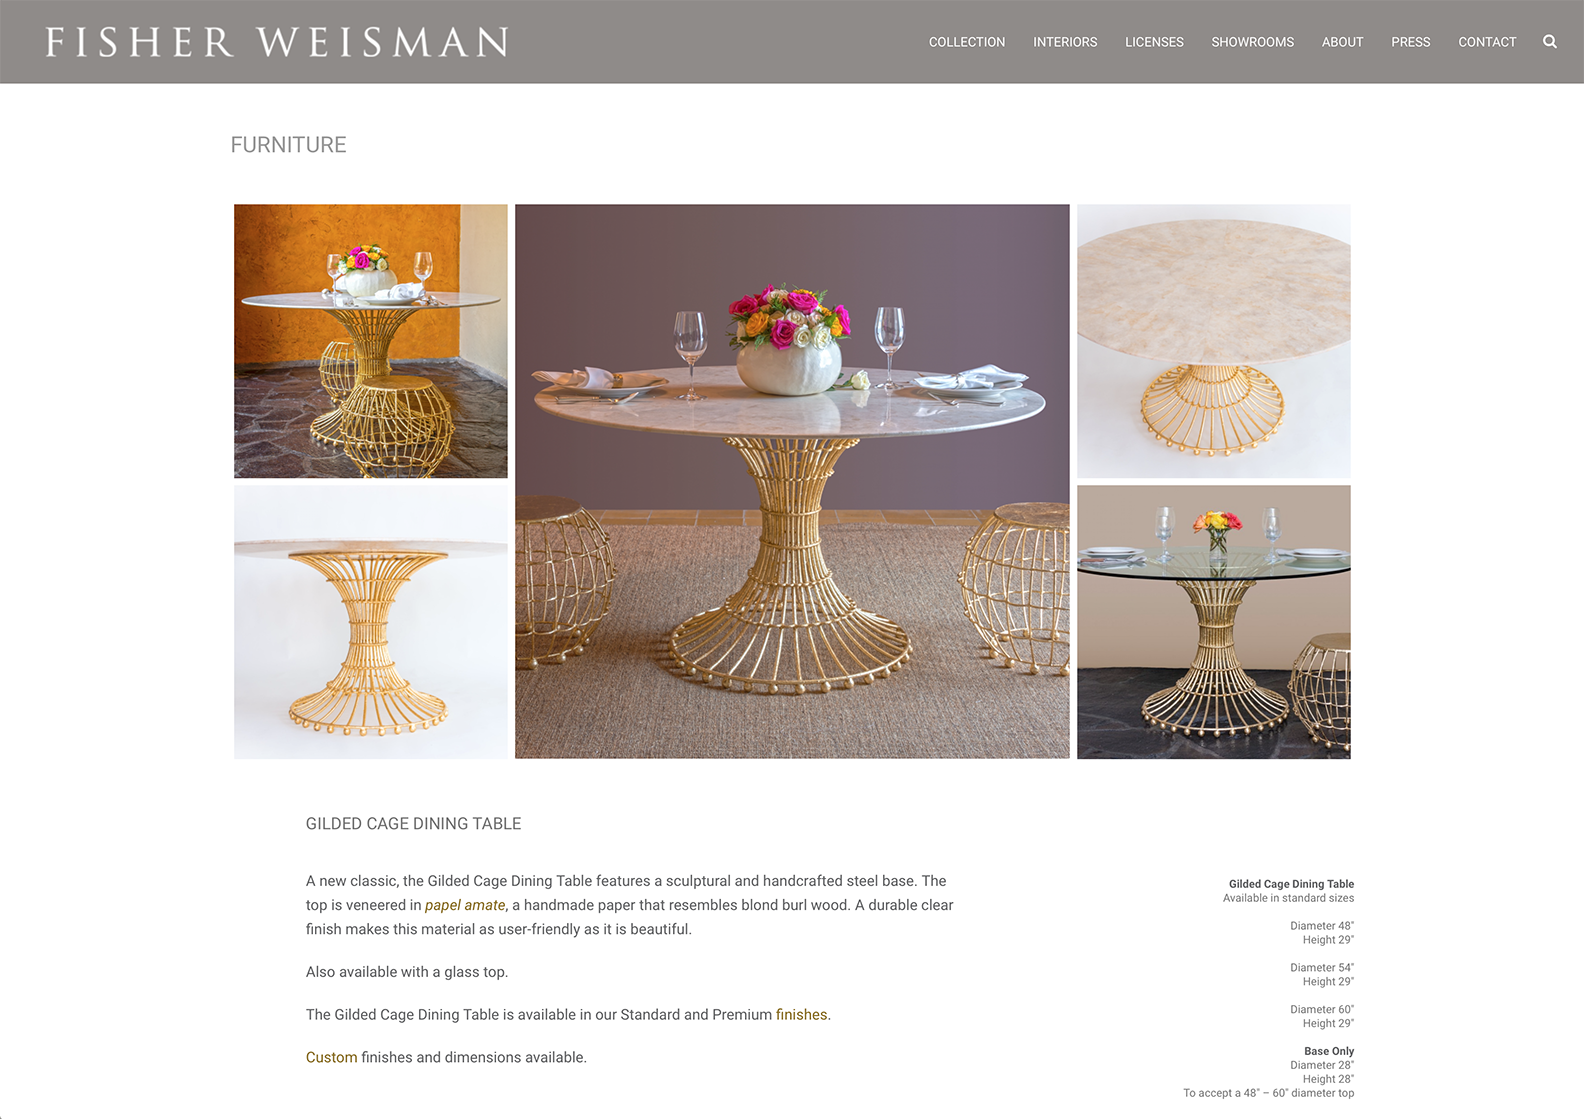 Fisher Weisman Colletction-Gilded Cage Dining Table